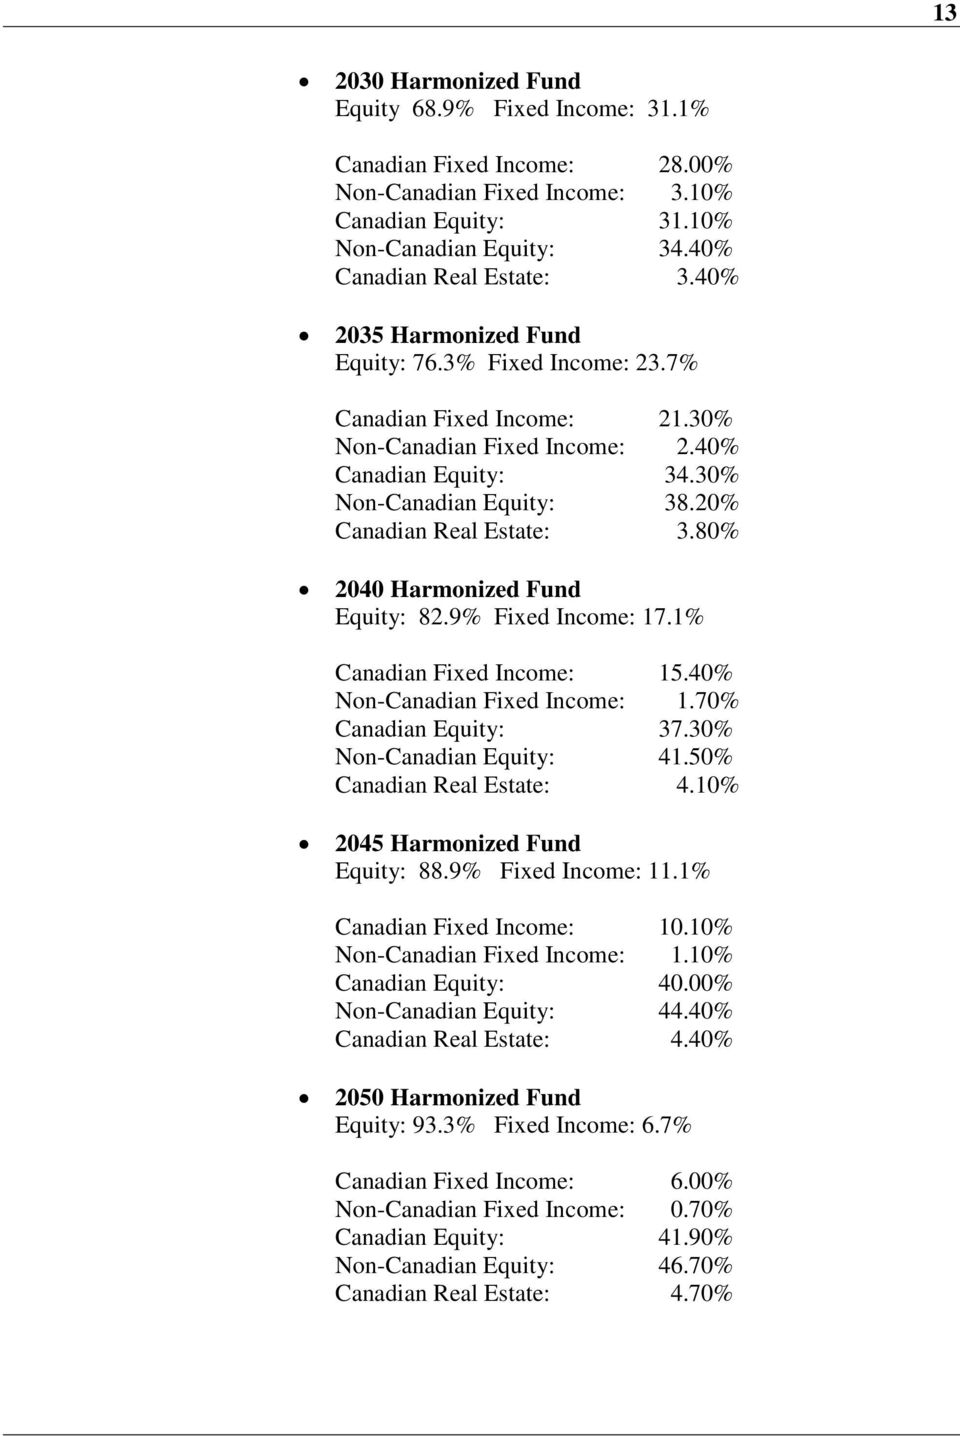 80% 2040 Harmonized Fund Equity: 82.9% Fixed Income: 17.1% Canadian Fixed Income: 15.40% Non-Canadian Fixed Income: 1.70% Canadian Equity: 37.30% Non-Canadian Equity: 41.50% Canadian Real Estate: 4.